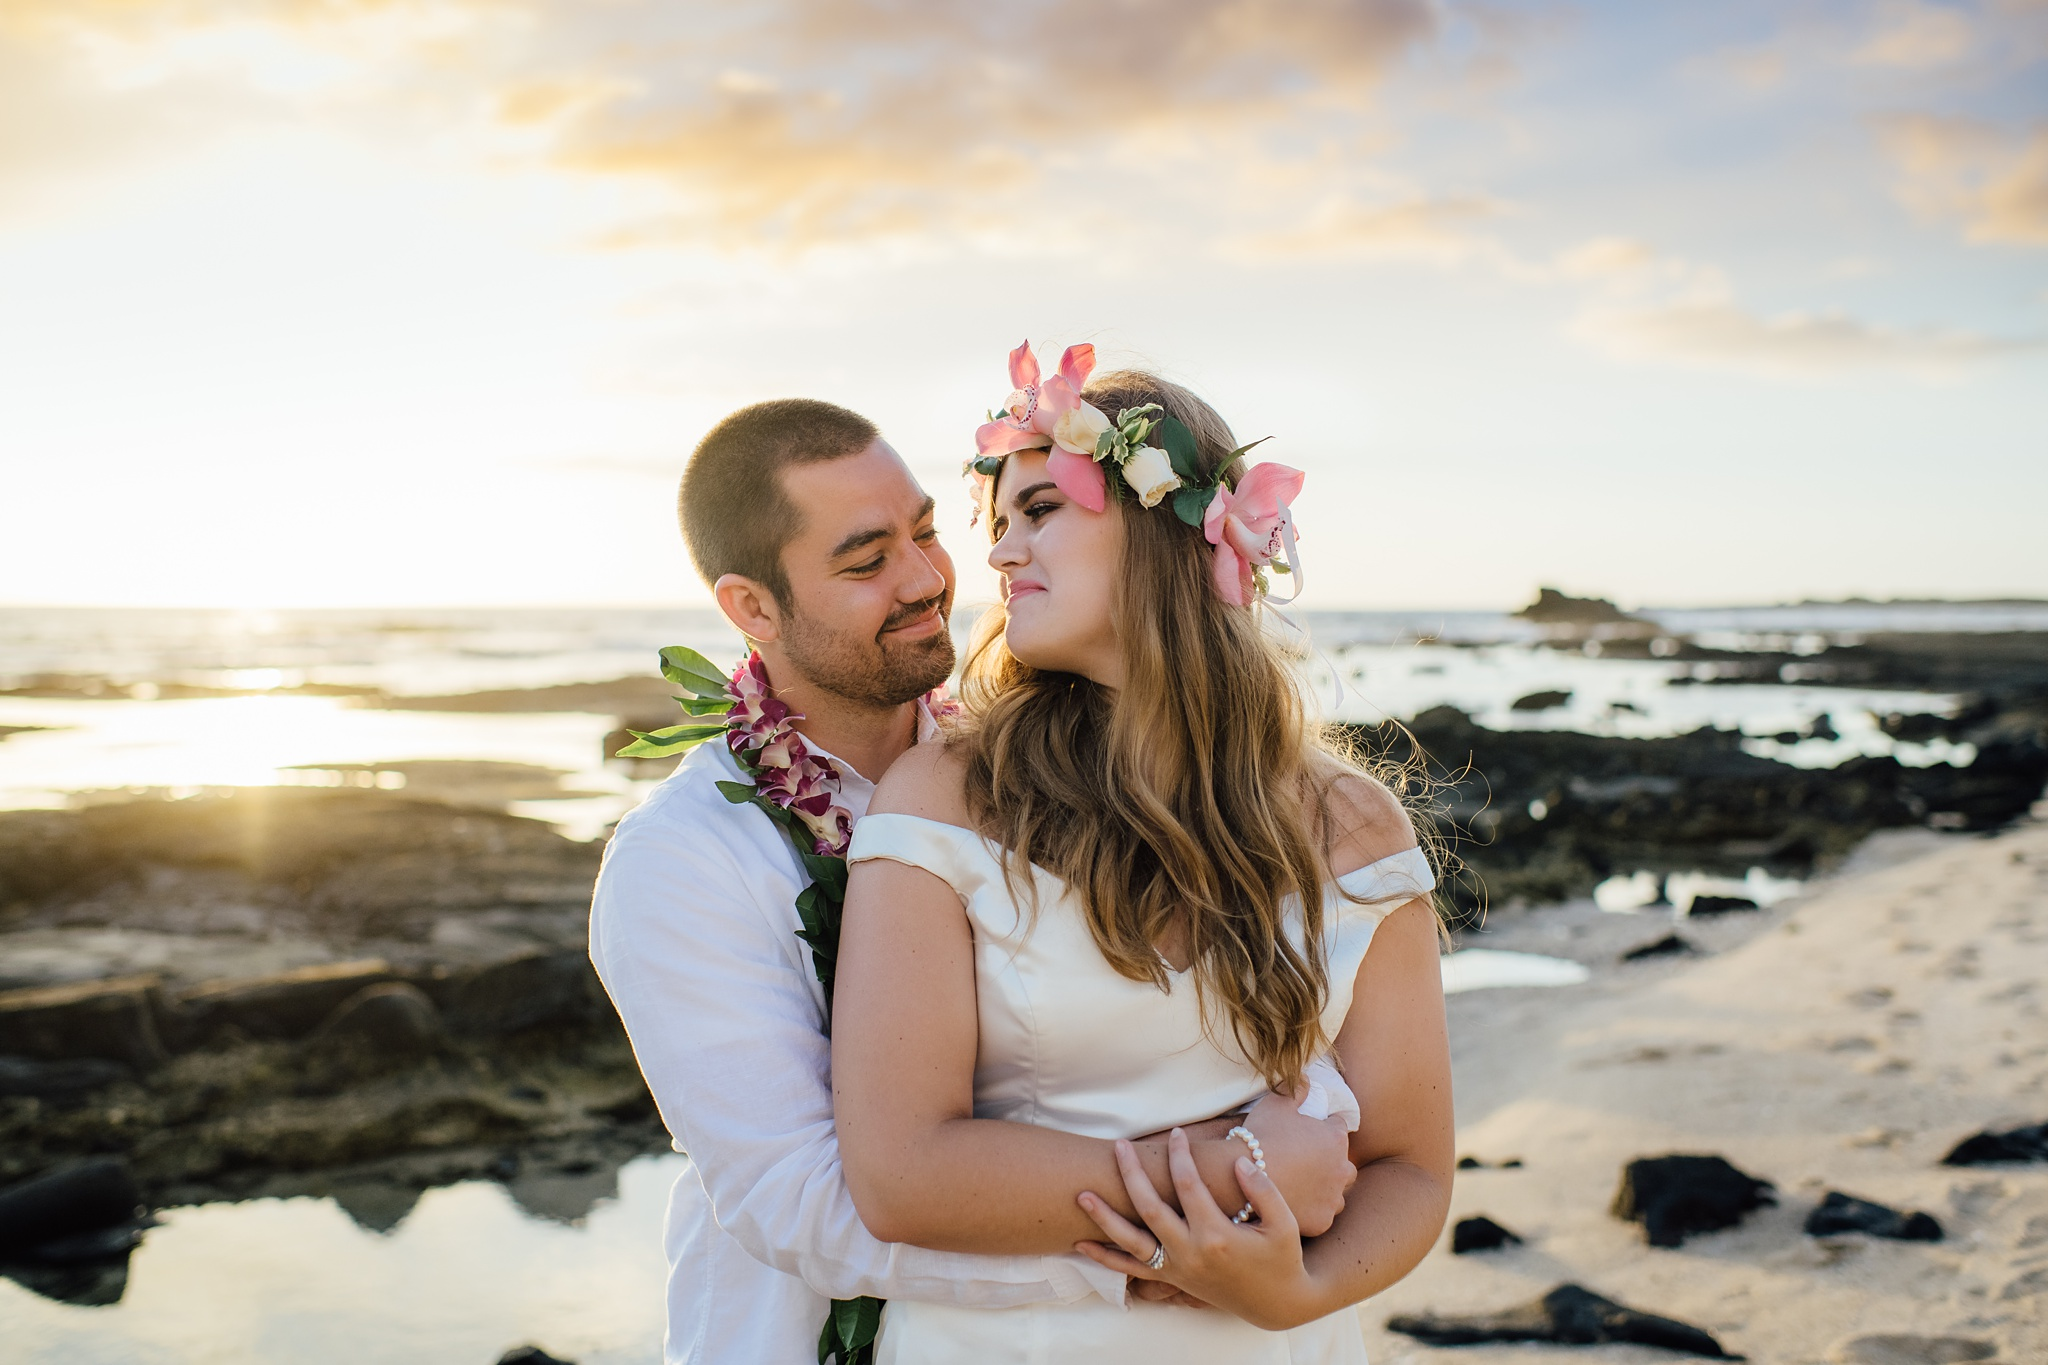 Big Island Bride and Groom during their wedding in Hawaii